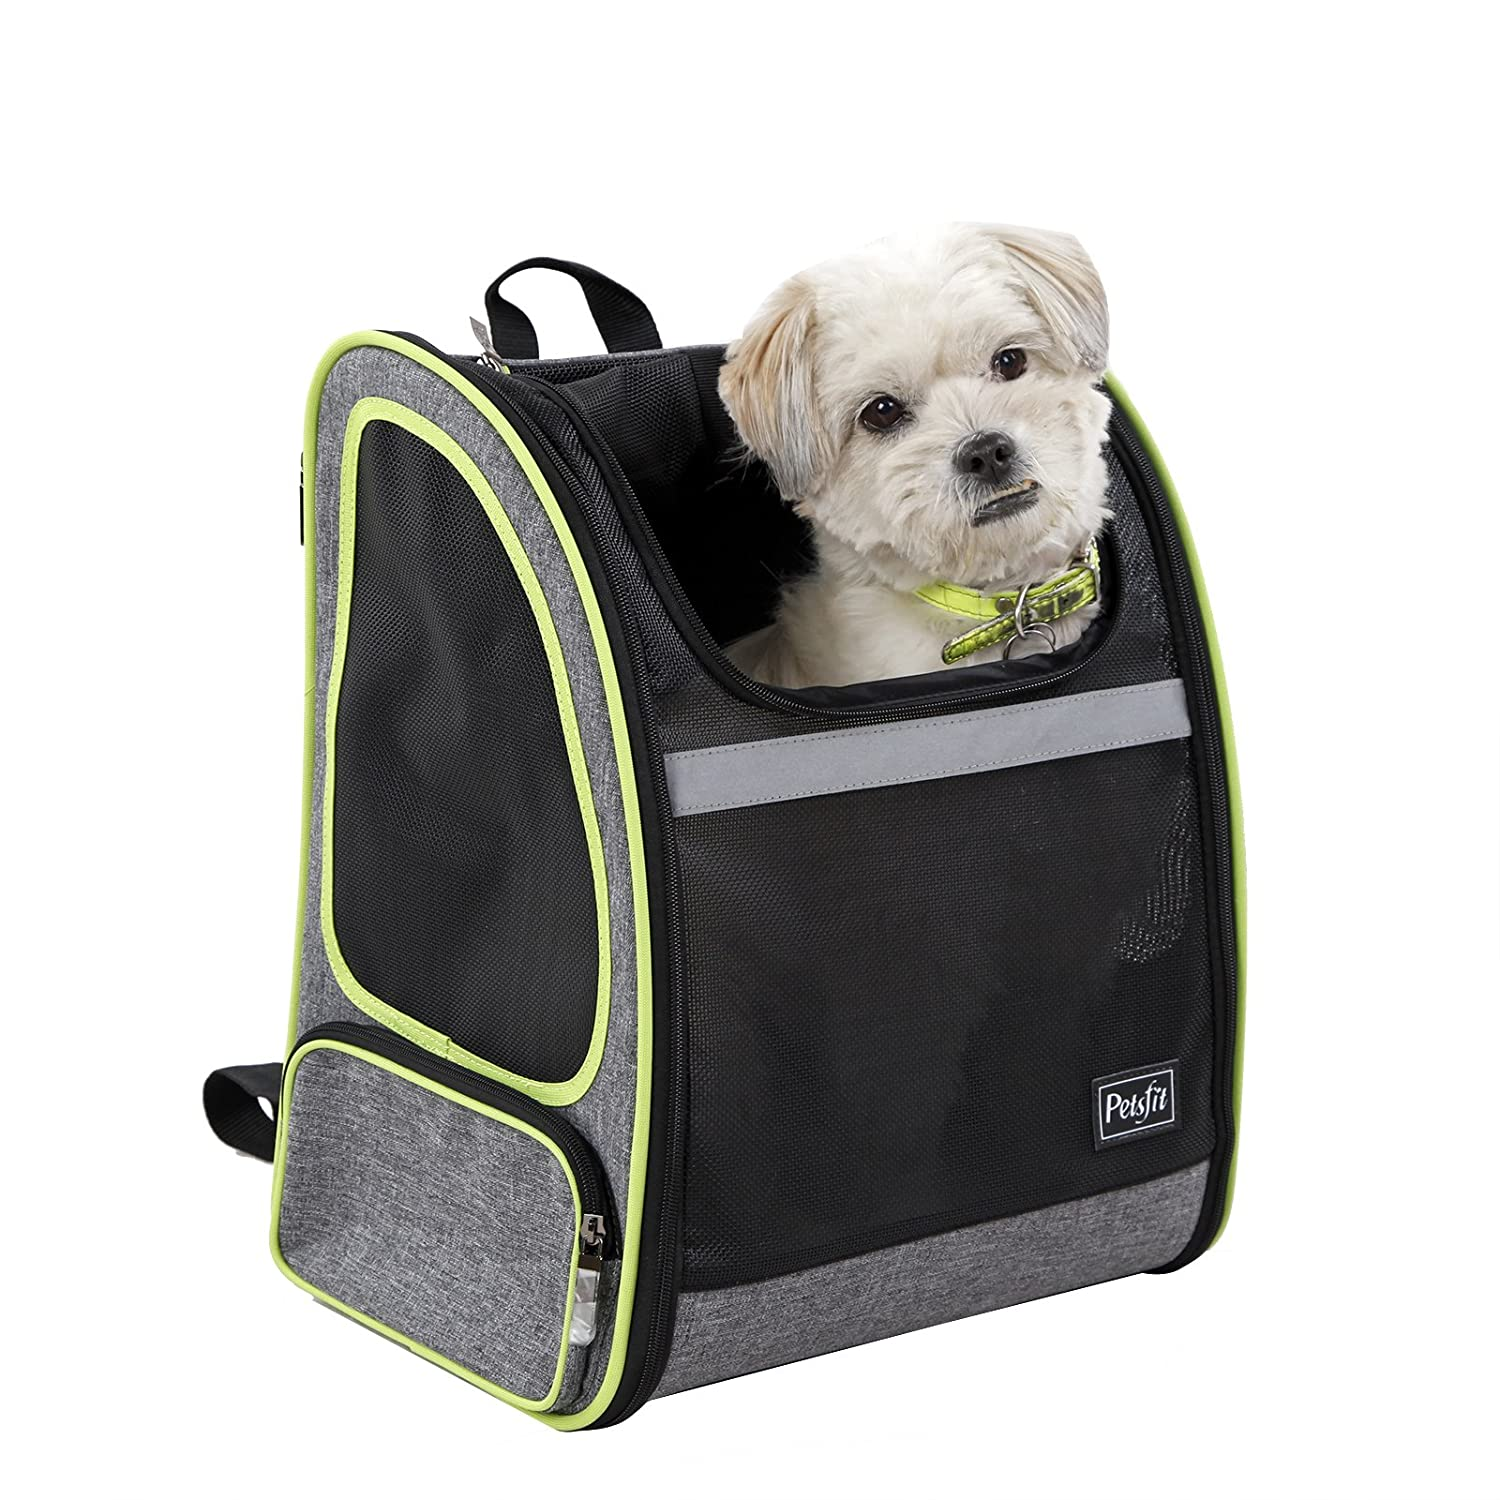 Petsfit Comfort Dogs Carriers Backpack